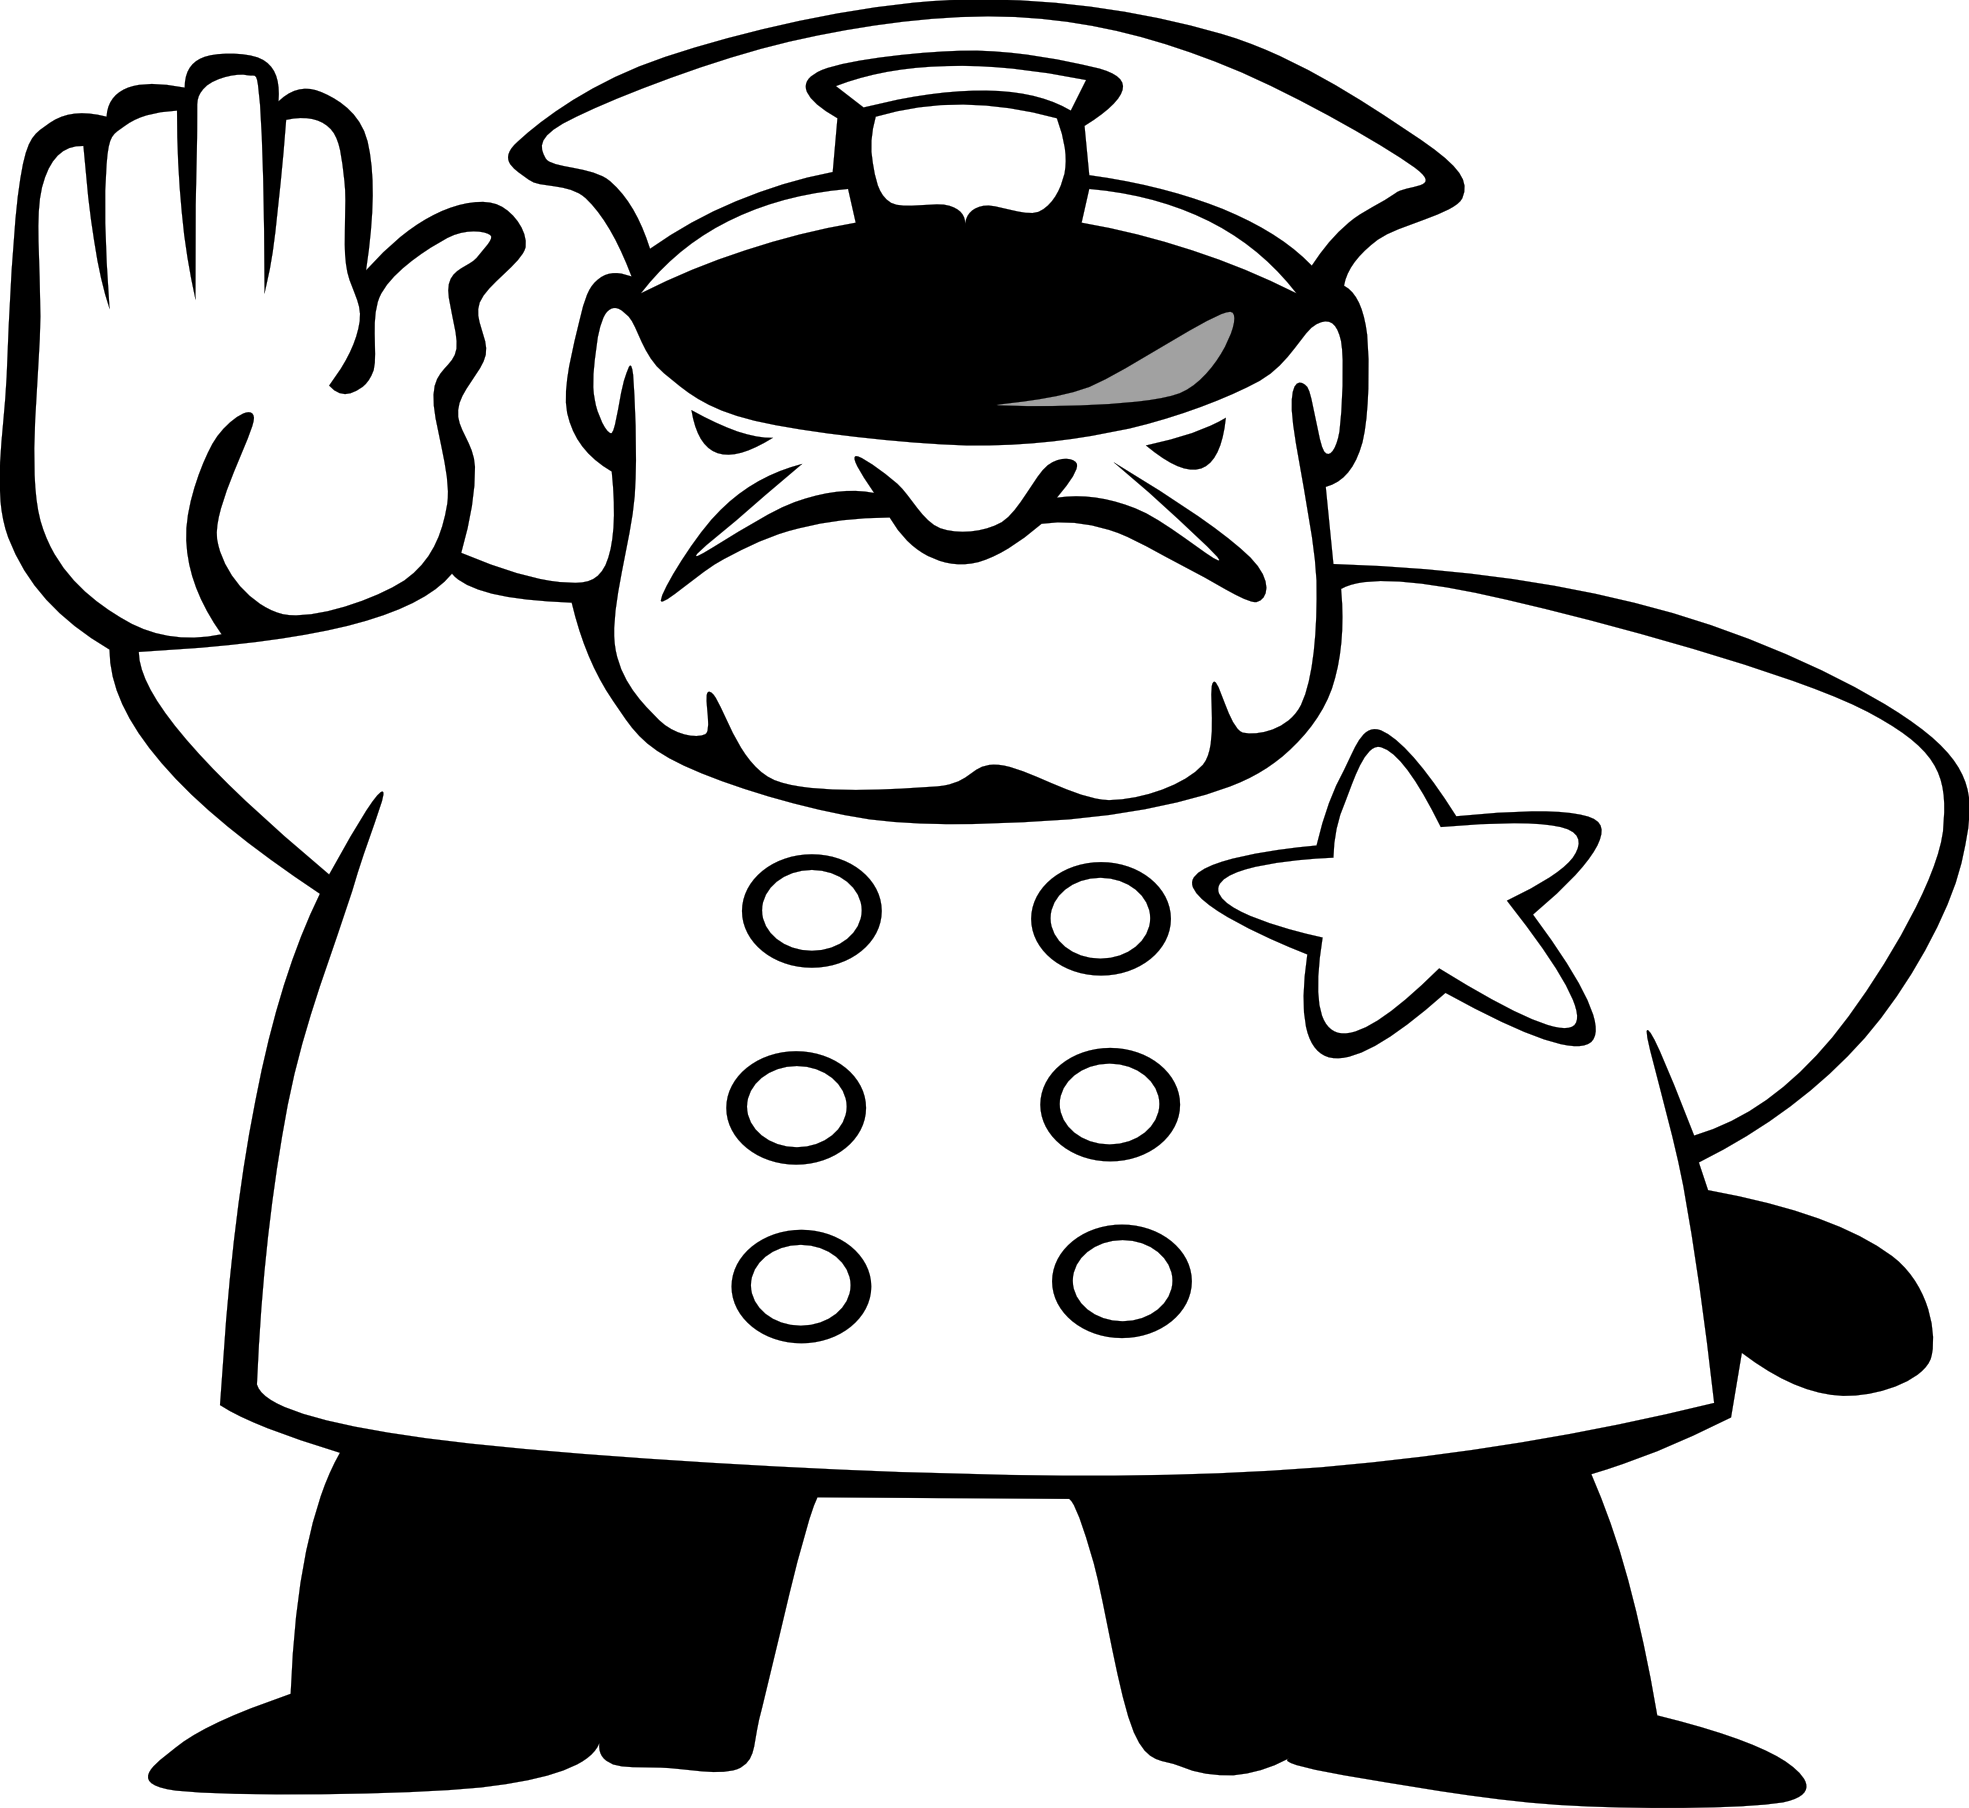 clipart free download Police man panda free. Cop clipart black and white